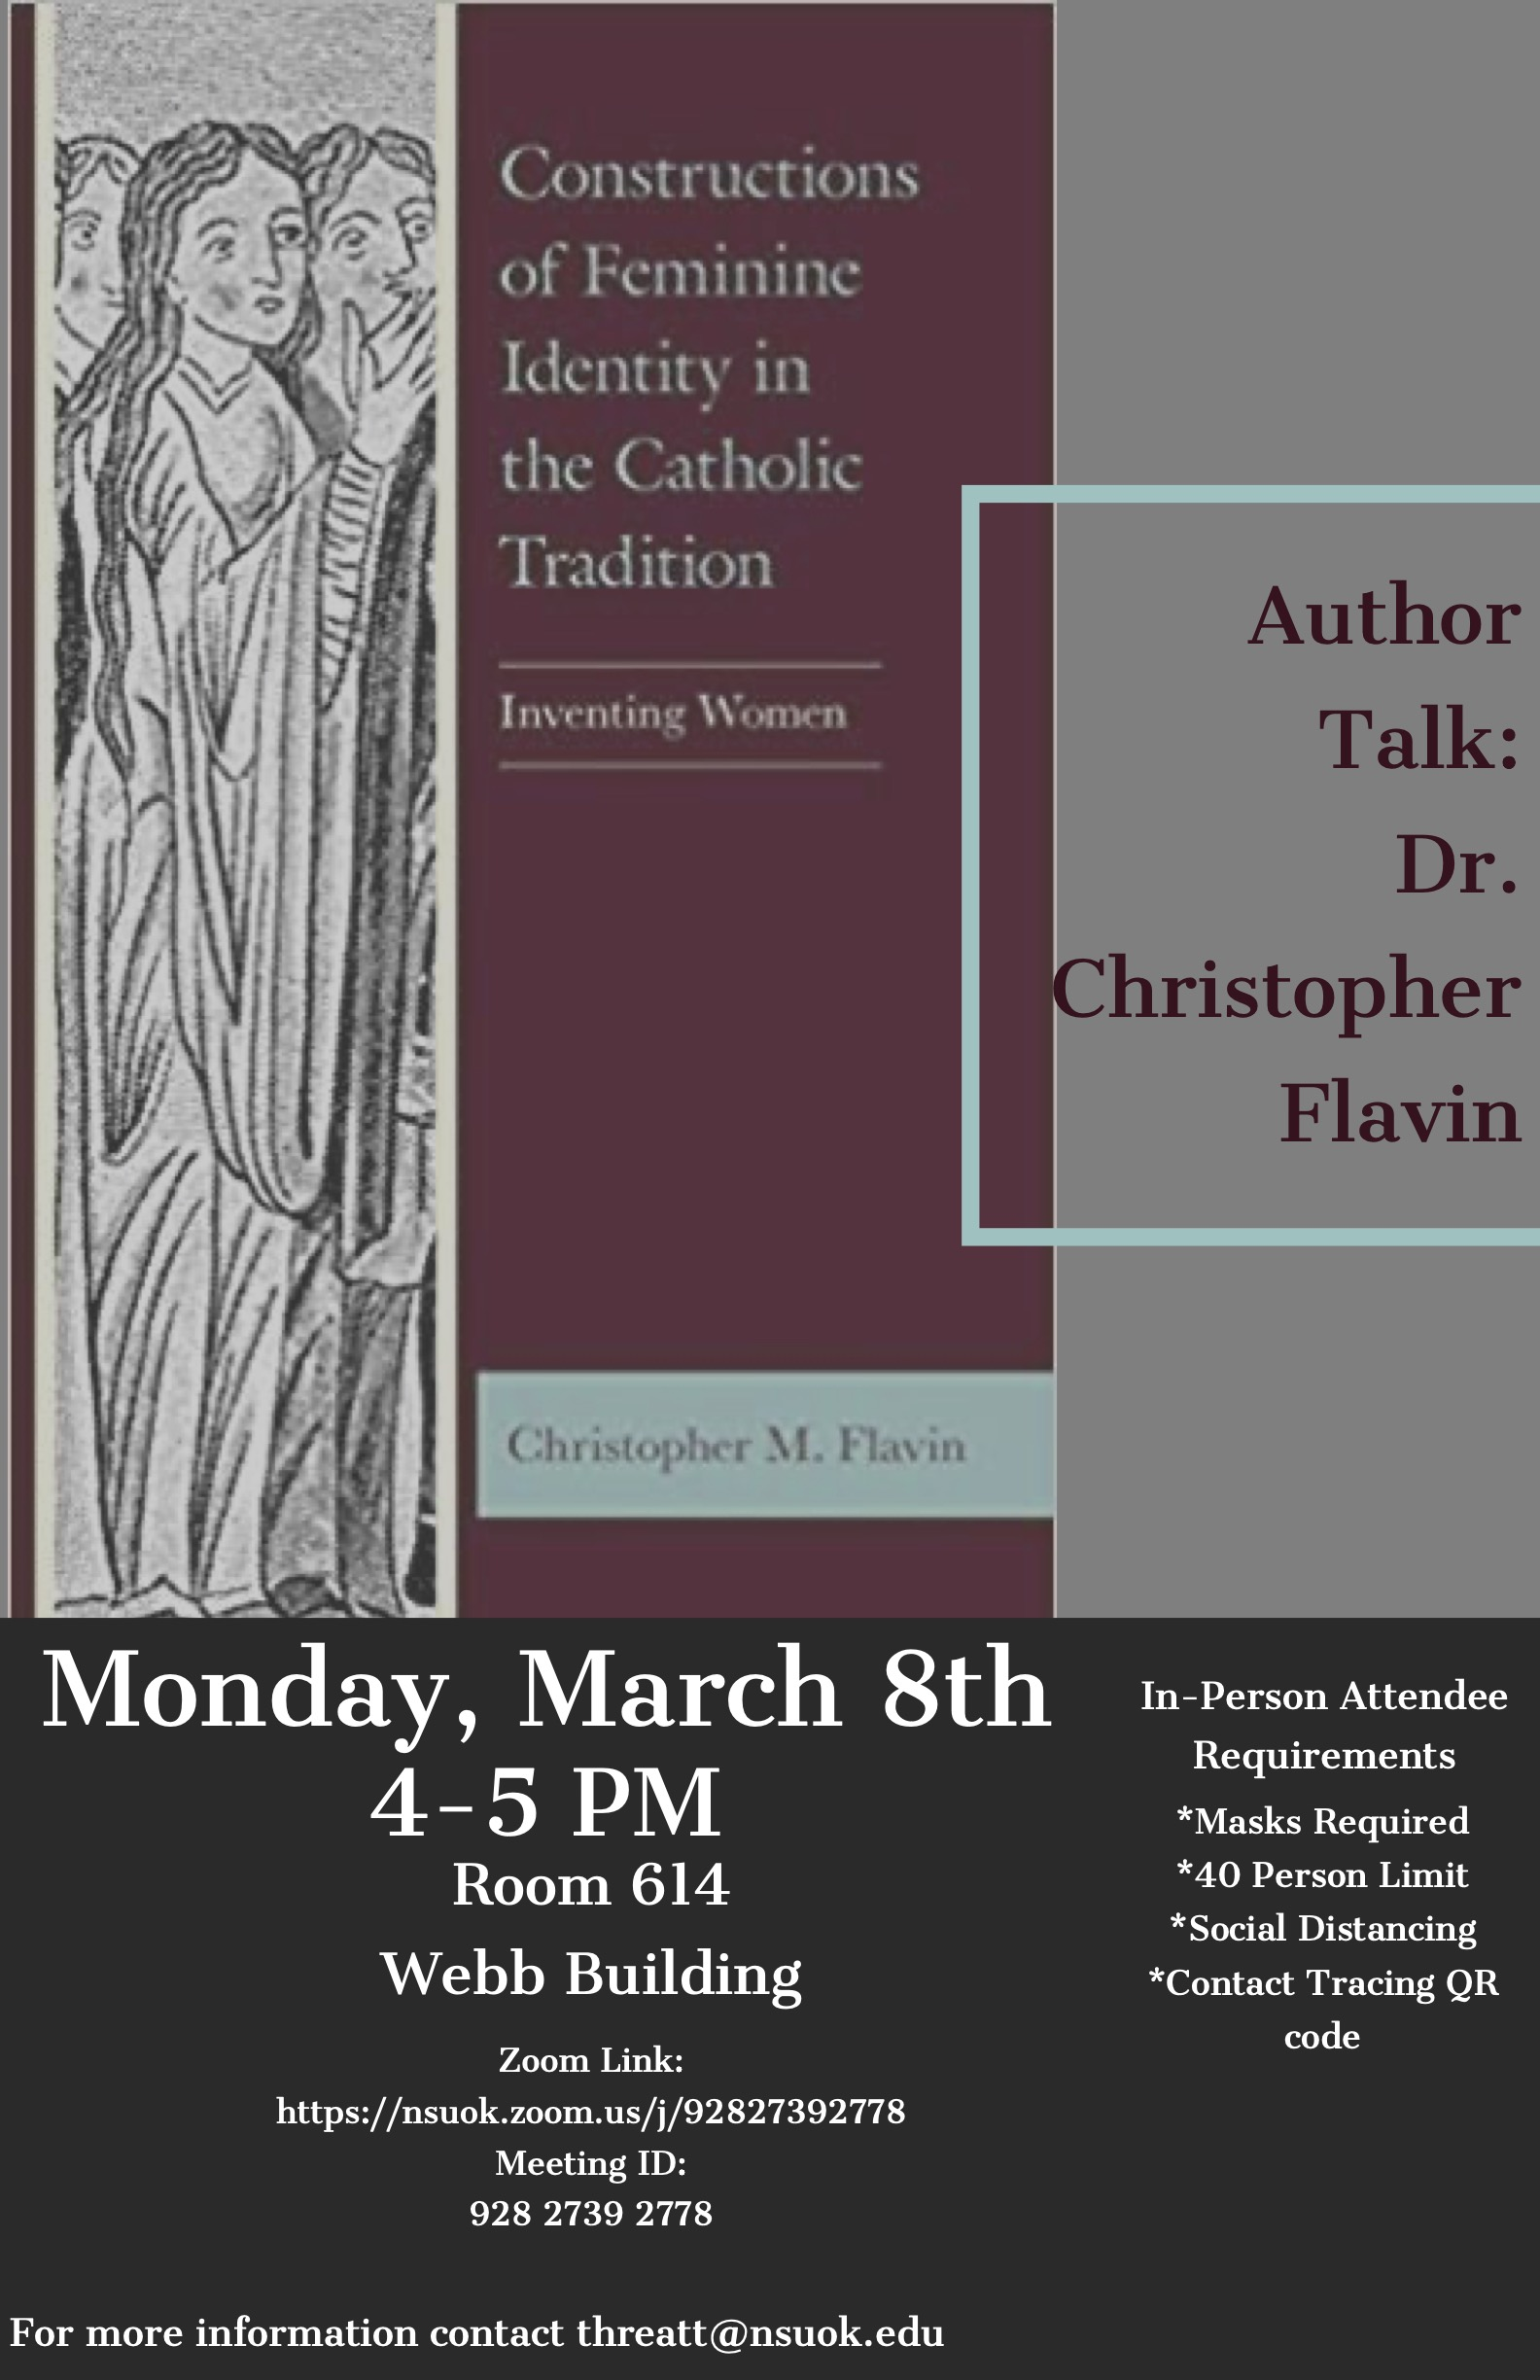 Author Talk: Dr. Christopher Flavin